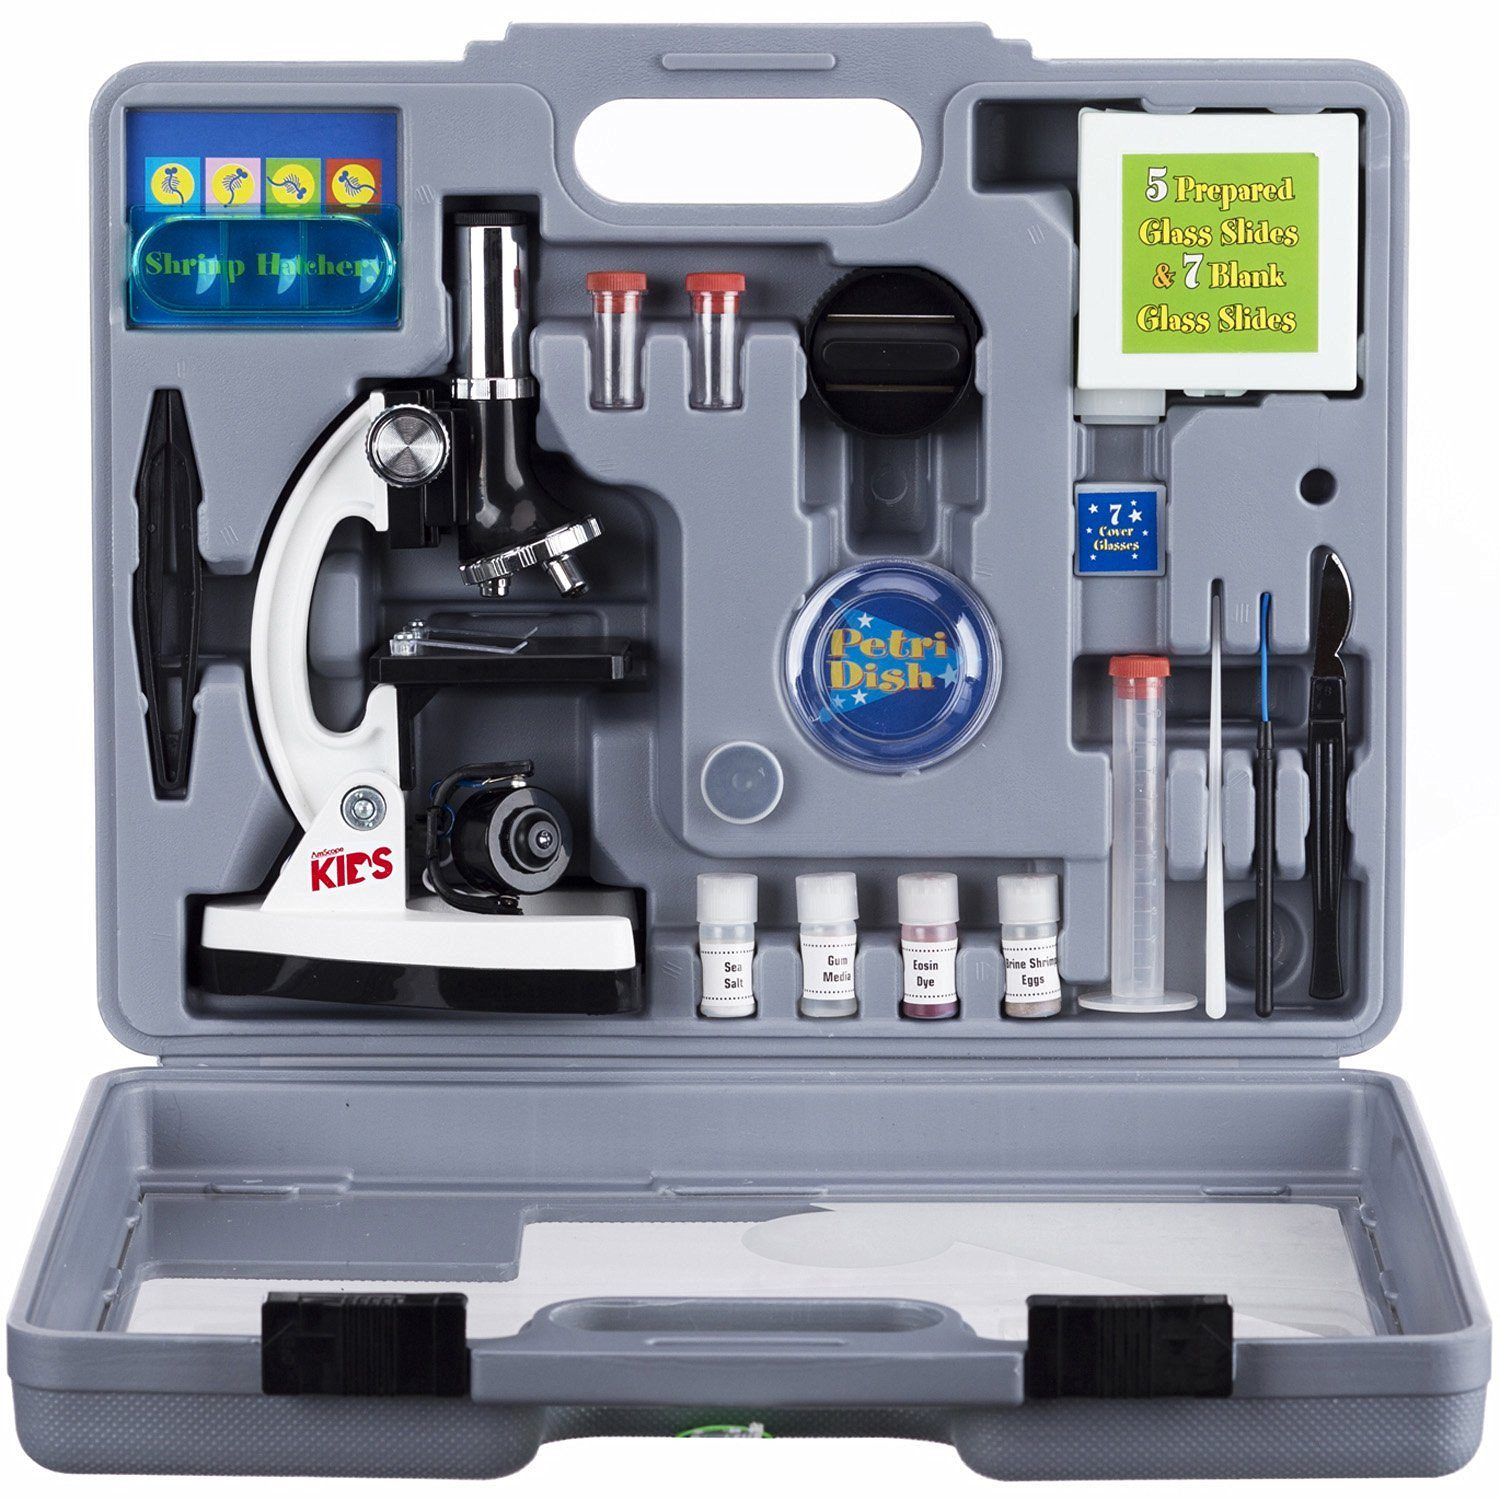 81FNVyOpXfL. SL1500  - AmScope M30-ABS-KT2-W Beginner Microscope Kit, LED and Mirror Illumination, 300X, 600x, and 1200x Magnification, Includes 52-Piece Accessory Set and Case, White